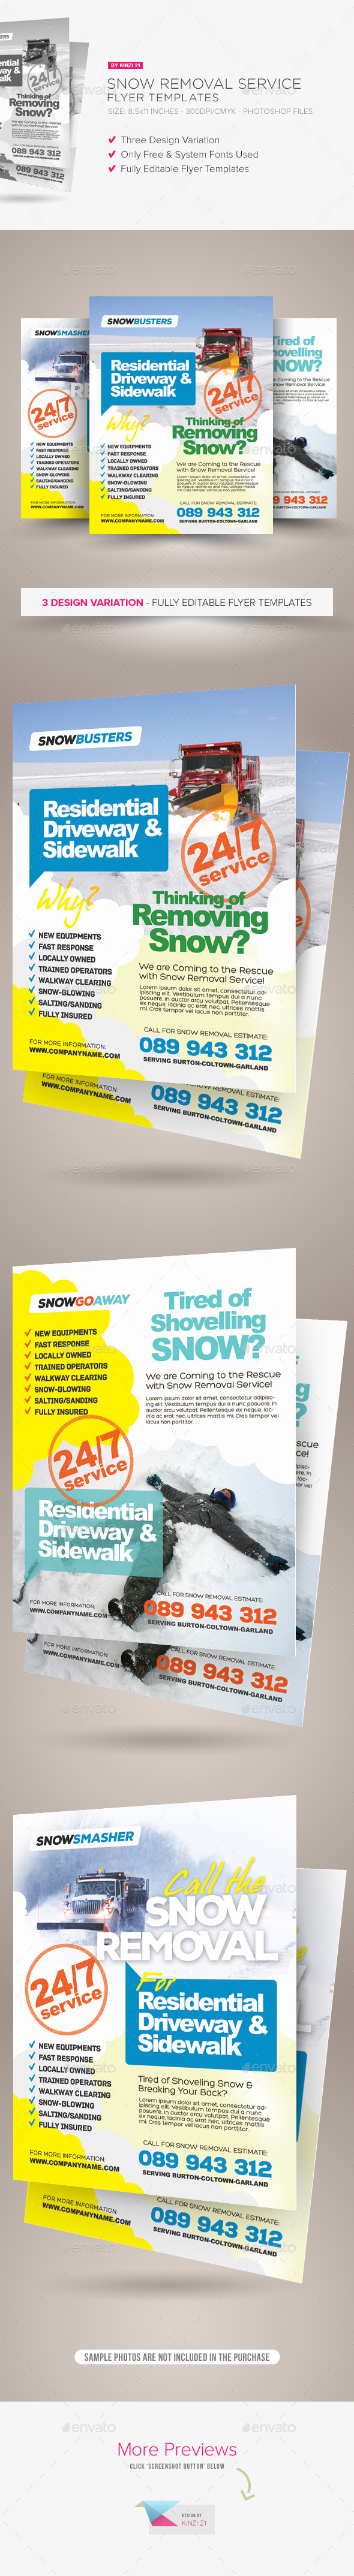 Snow Removal Service Flyers - Corporate Flyers